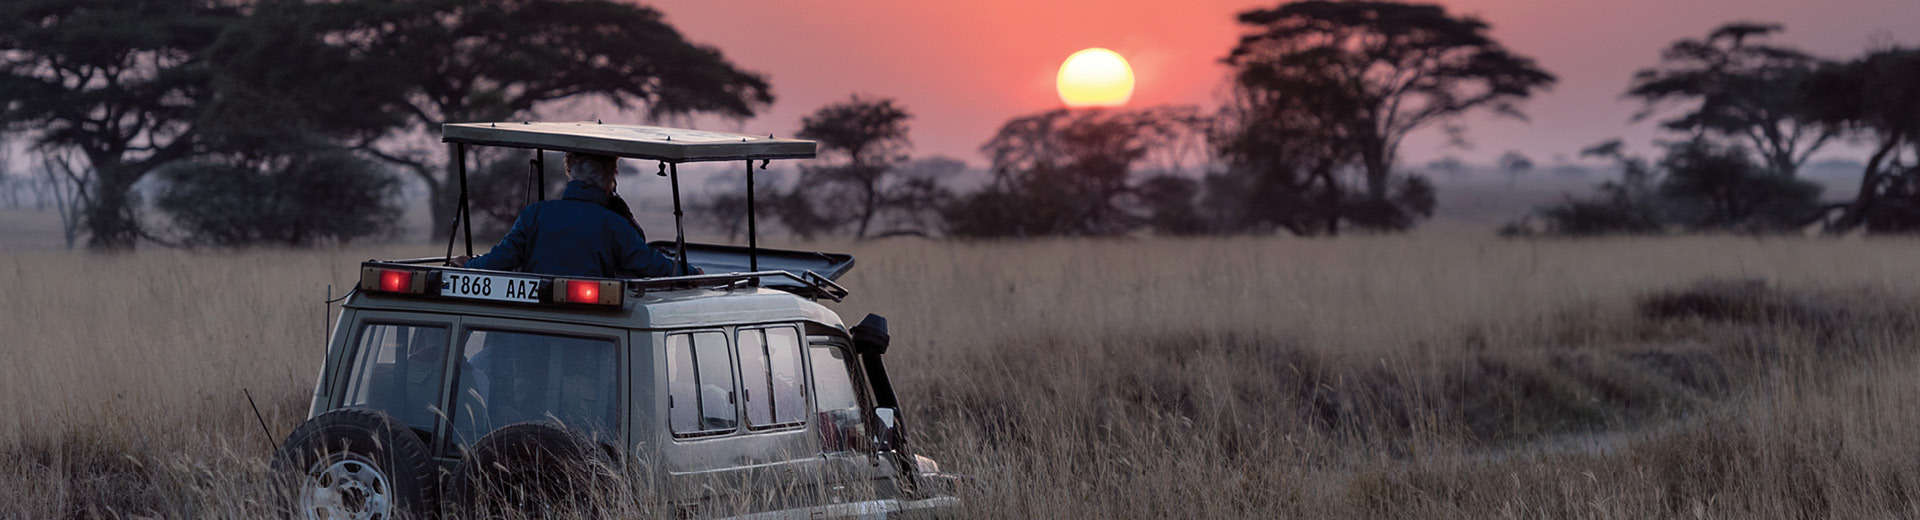 classic tanzania safari sunset